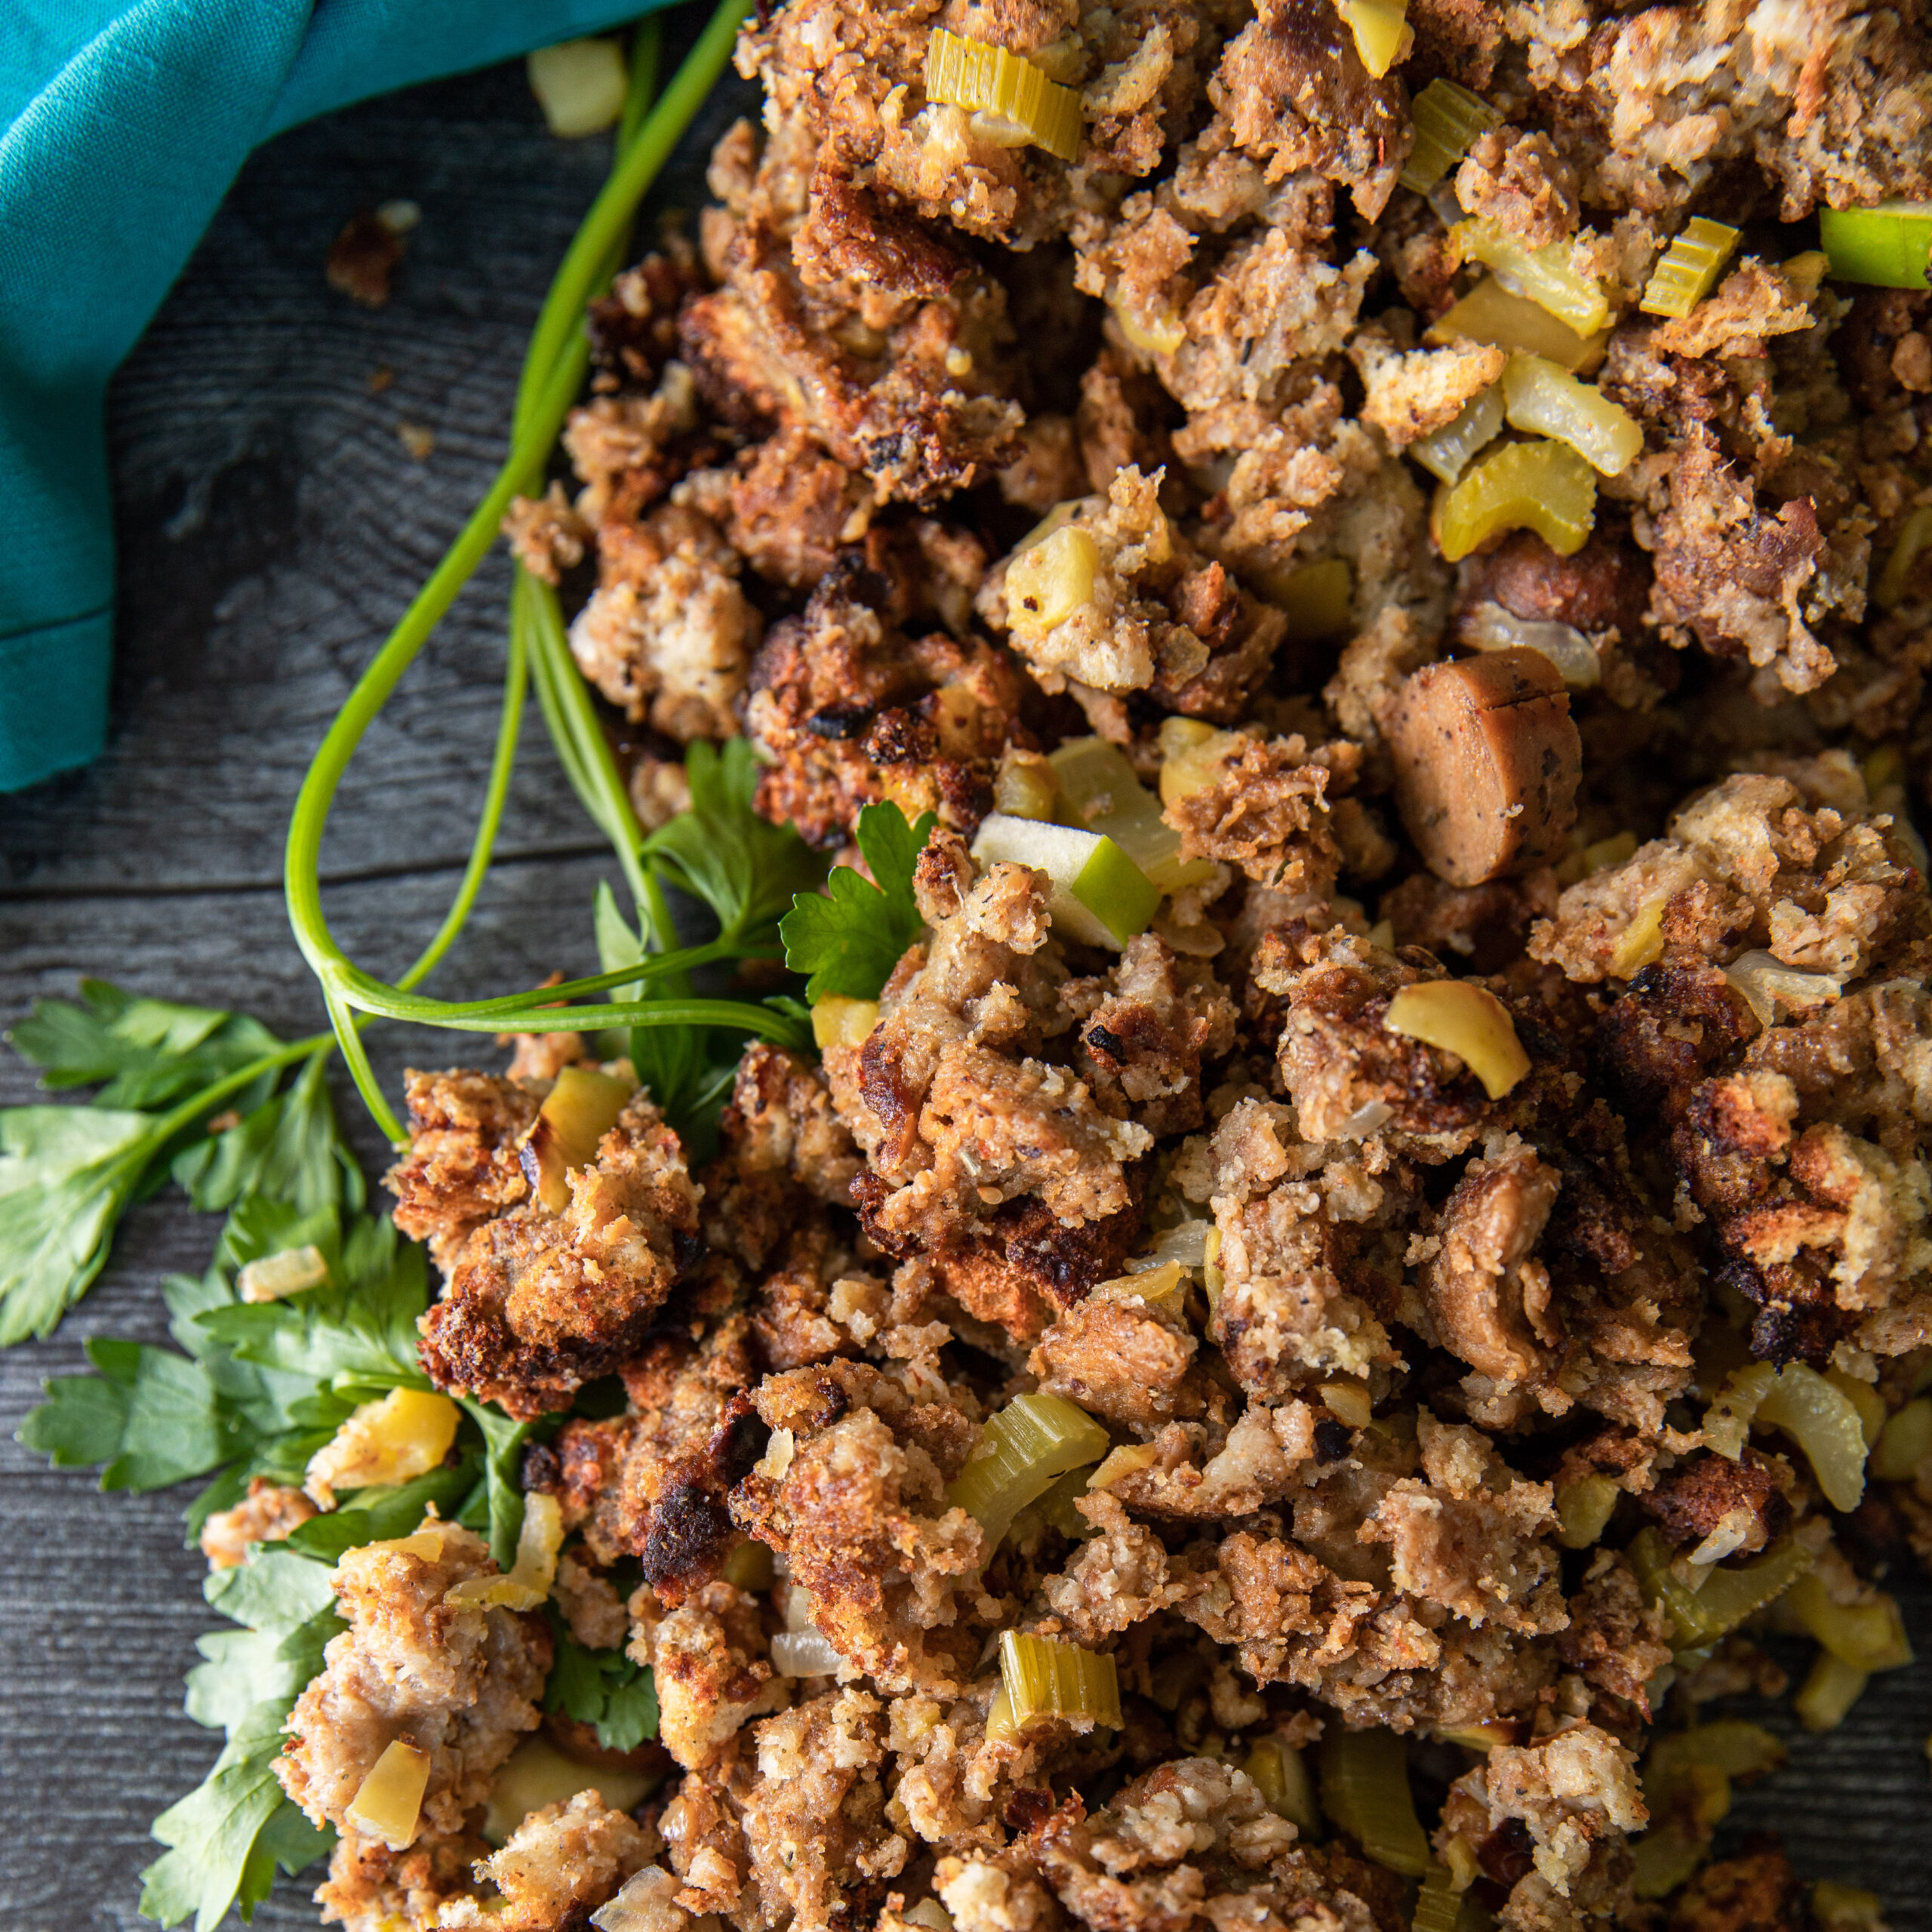 Vegan stuffing for Thanksgiving made with No Evil Foods The Stallion Italian Sausage